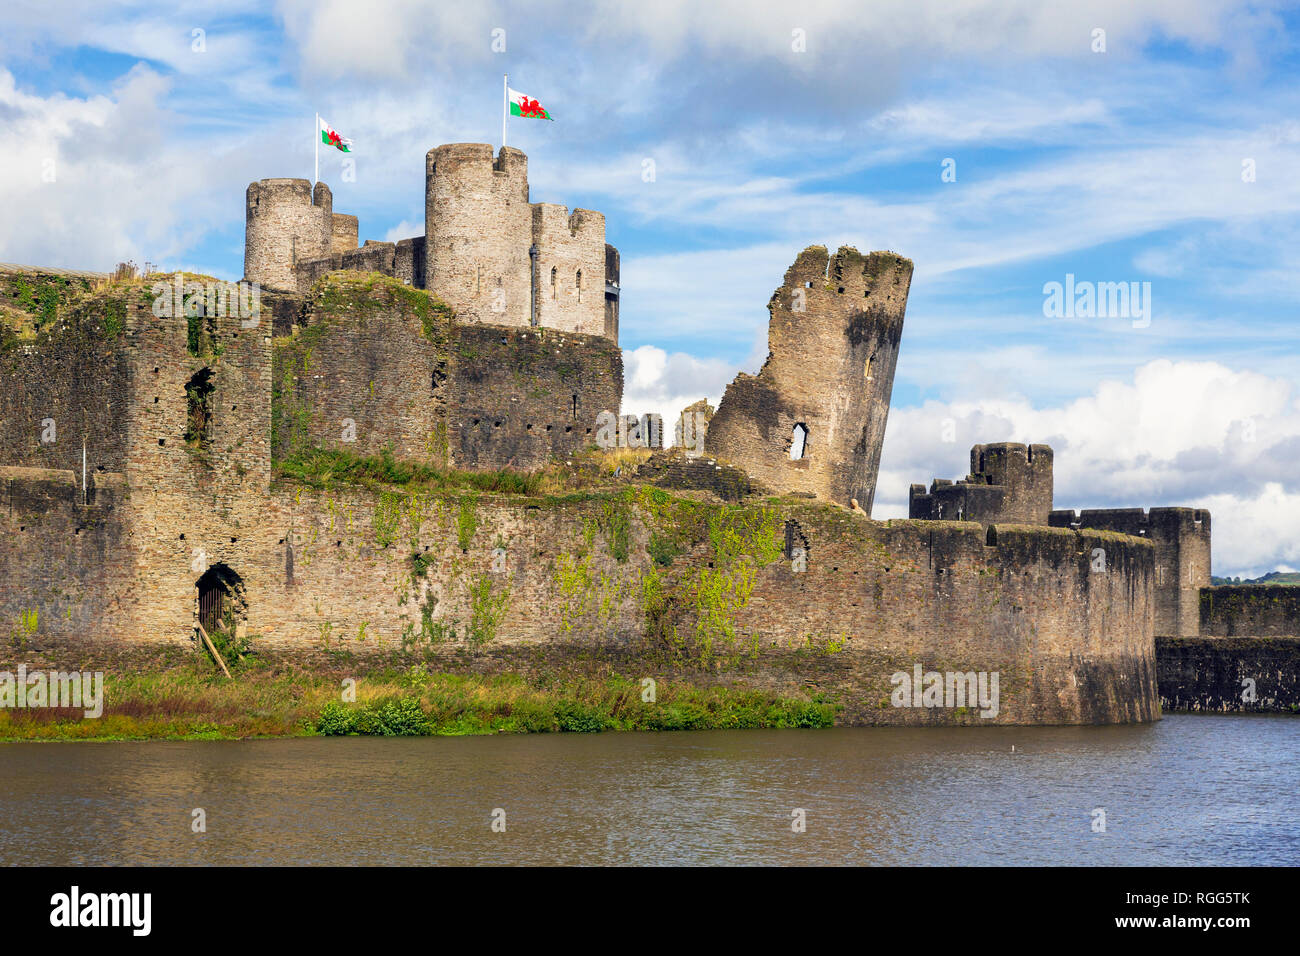 Caerphilly, Caerphilly, Wales, United Kingdom. Caerphilly castle with its moat. - Stock Image